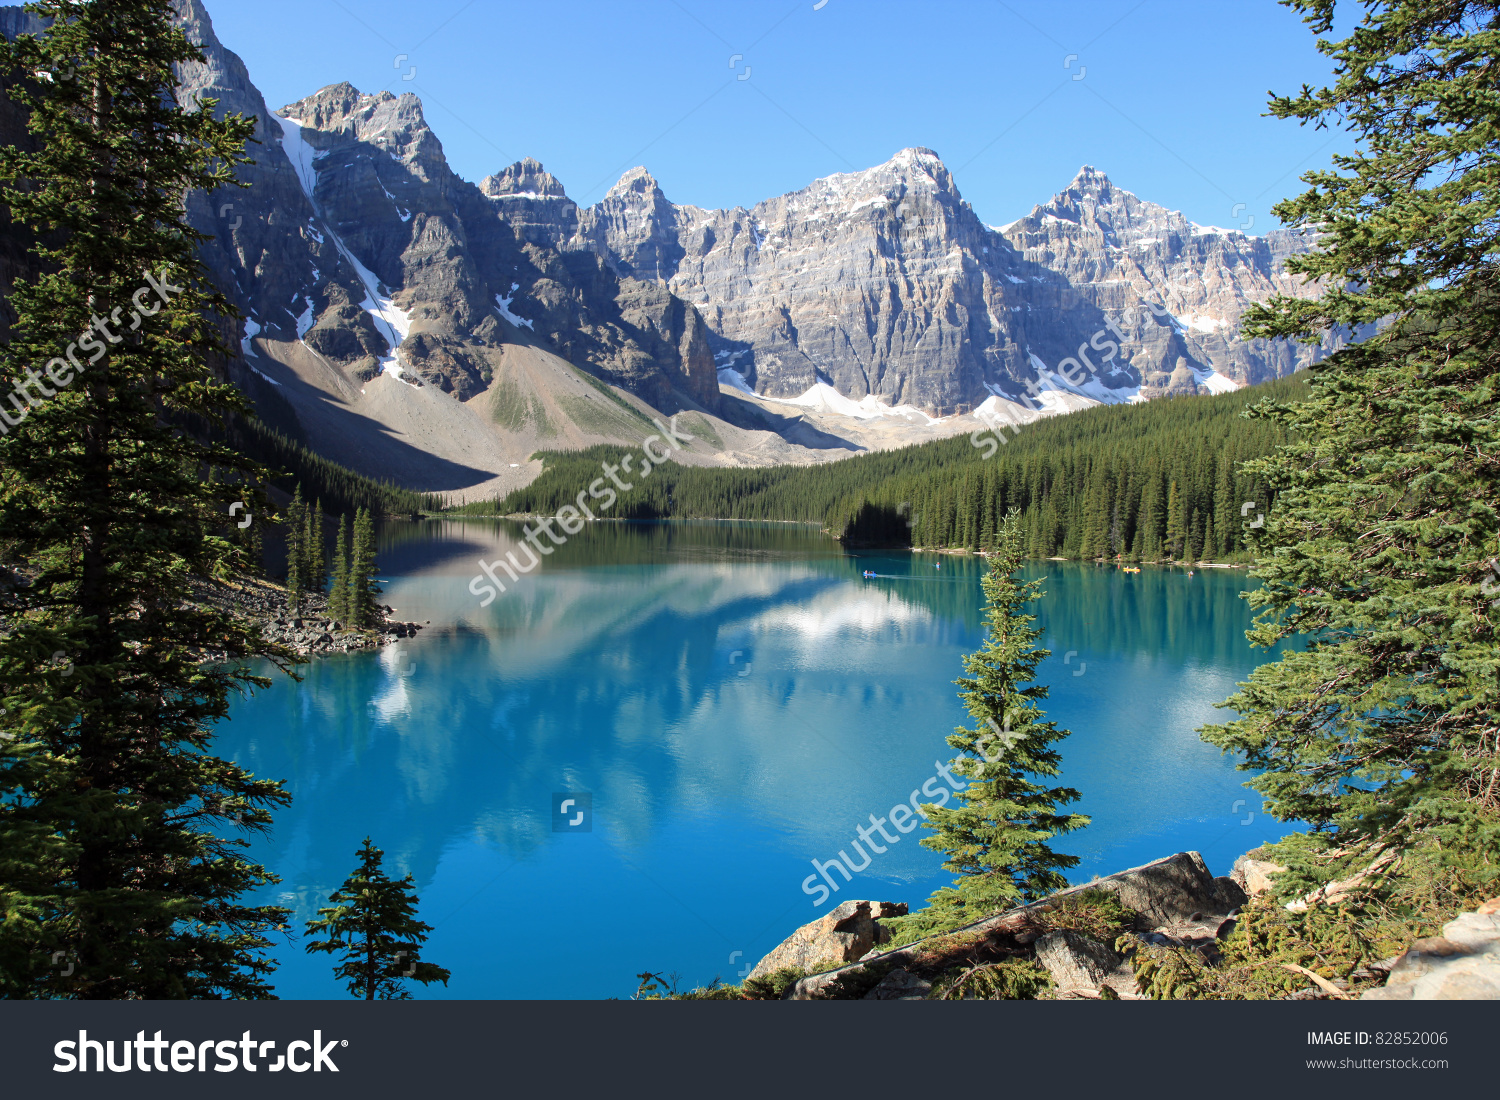 Banff National Park clipart #3, Download drawings